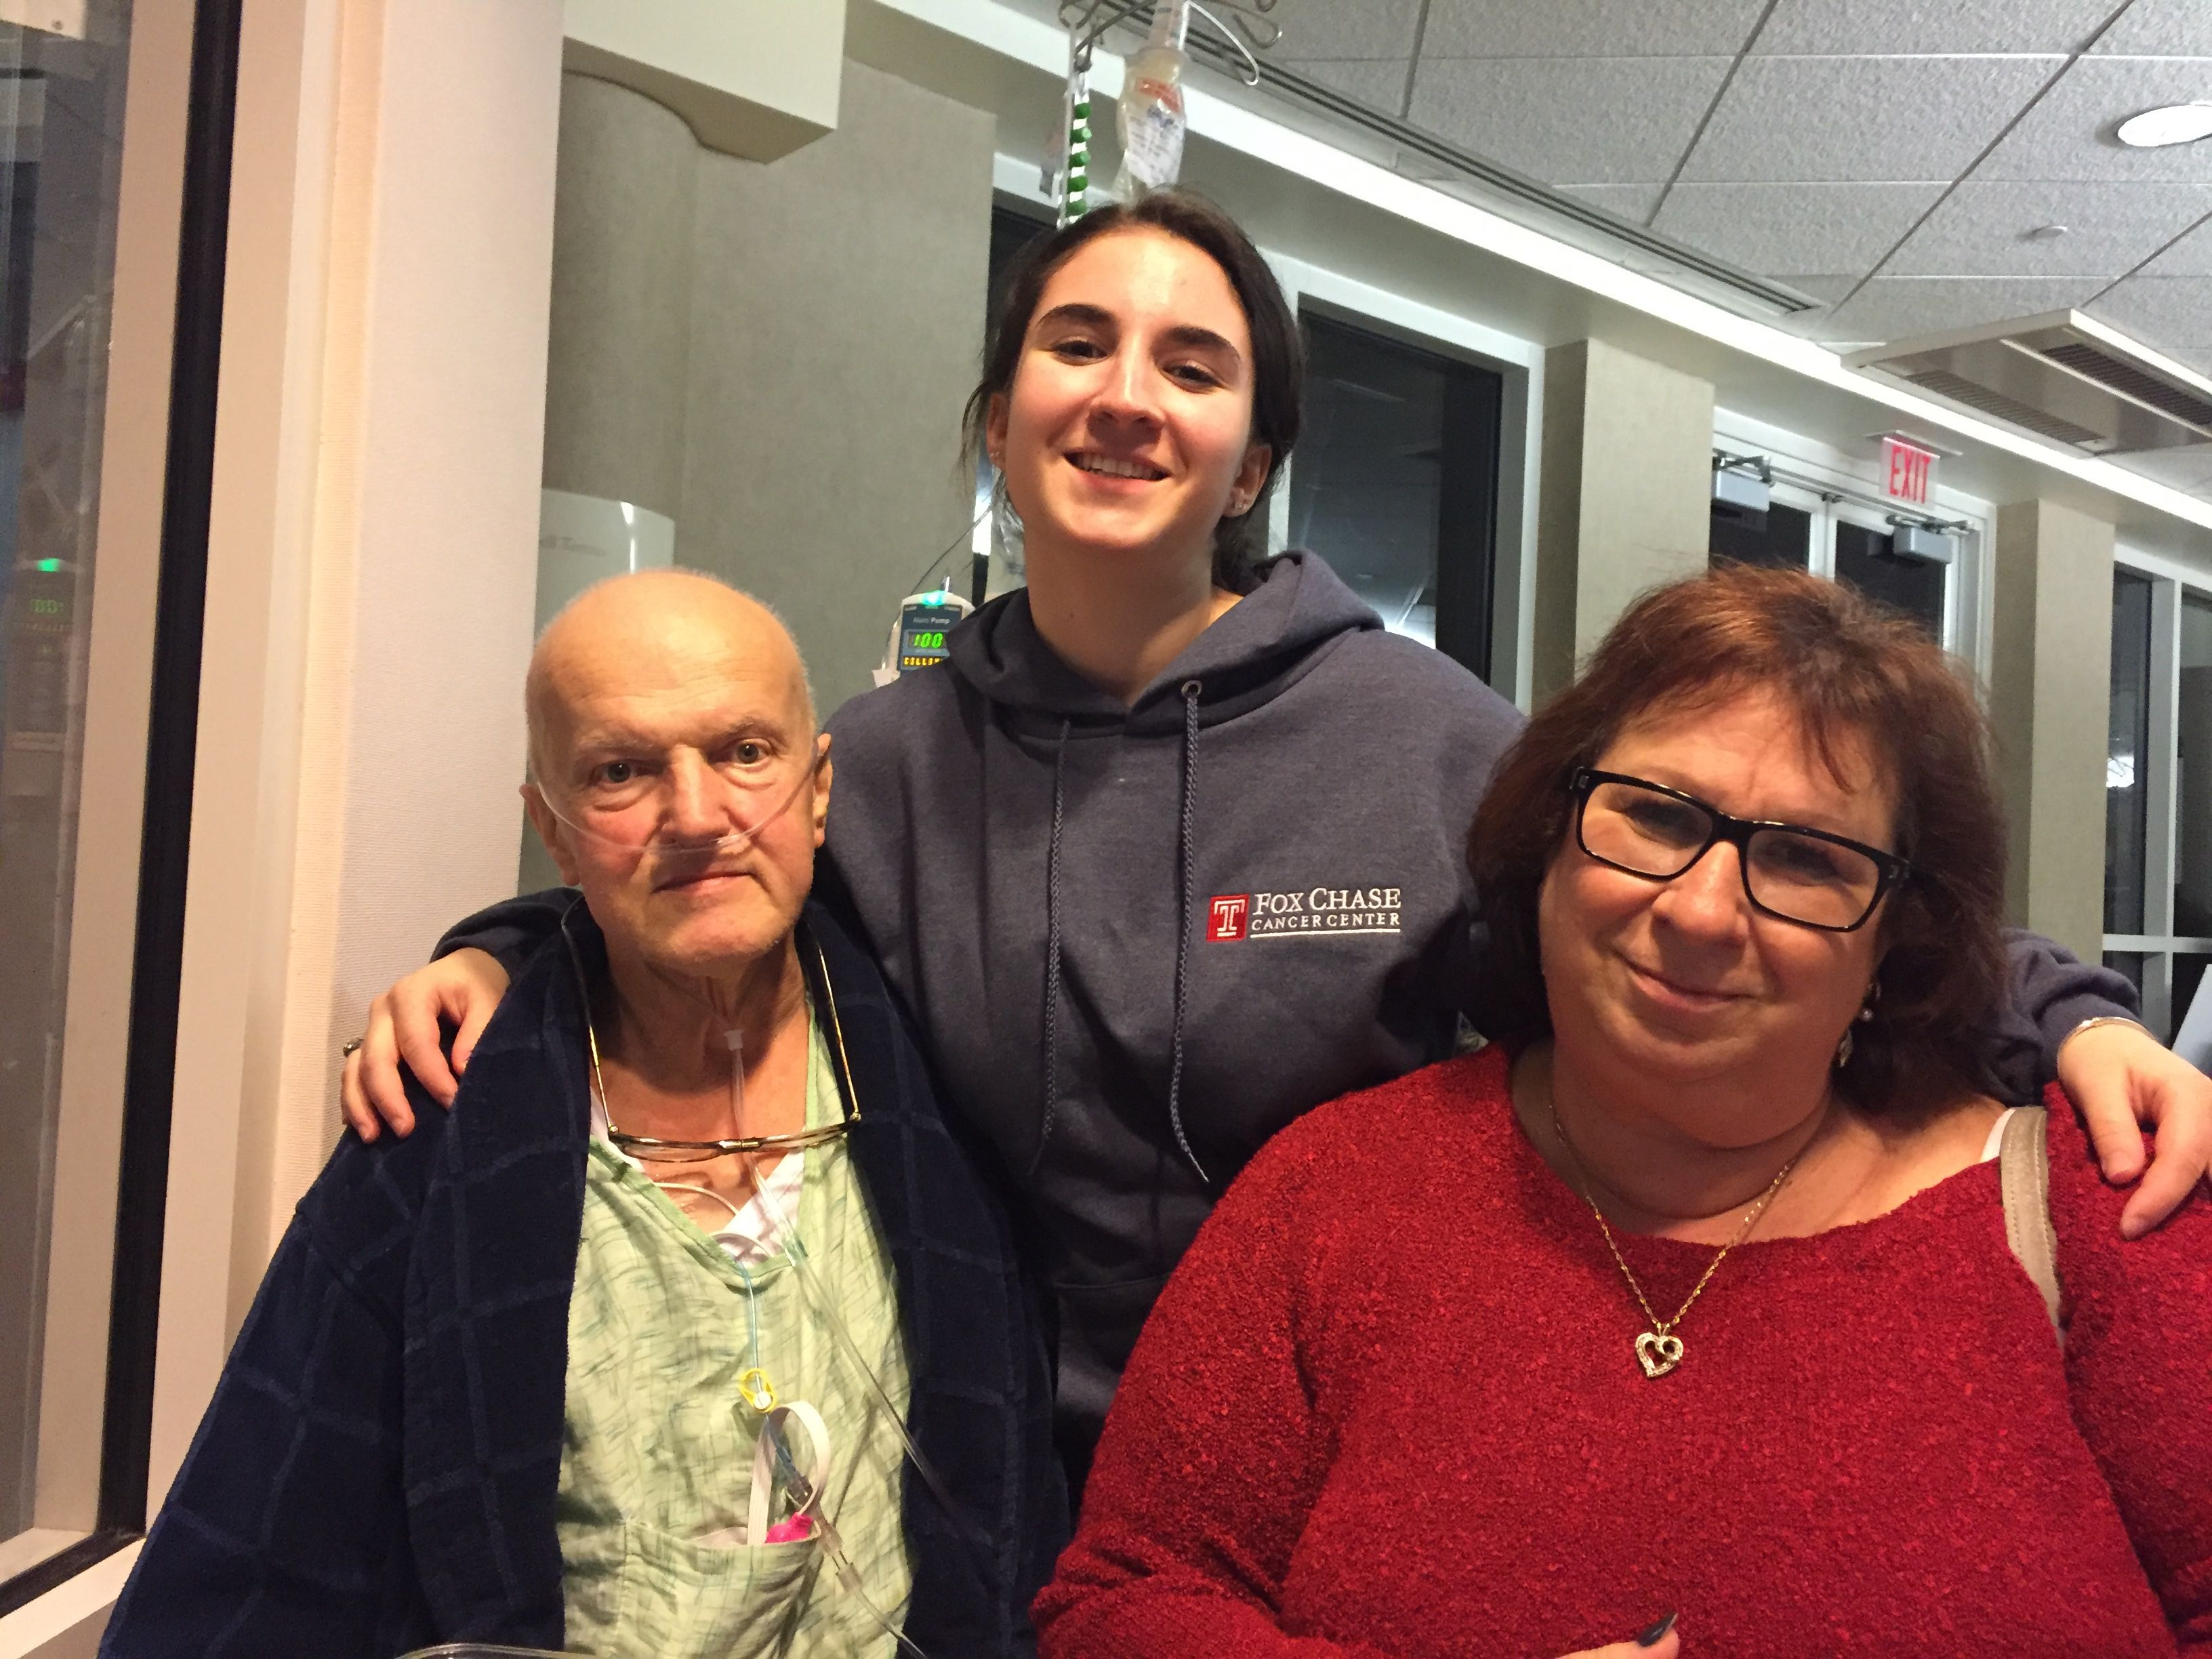 Joyce Vrbicek's husband Braco received treatment for lung cancer at Fox Chase. When she was diagnosed with lung nodules, it was her first choice to be treated here.